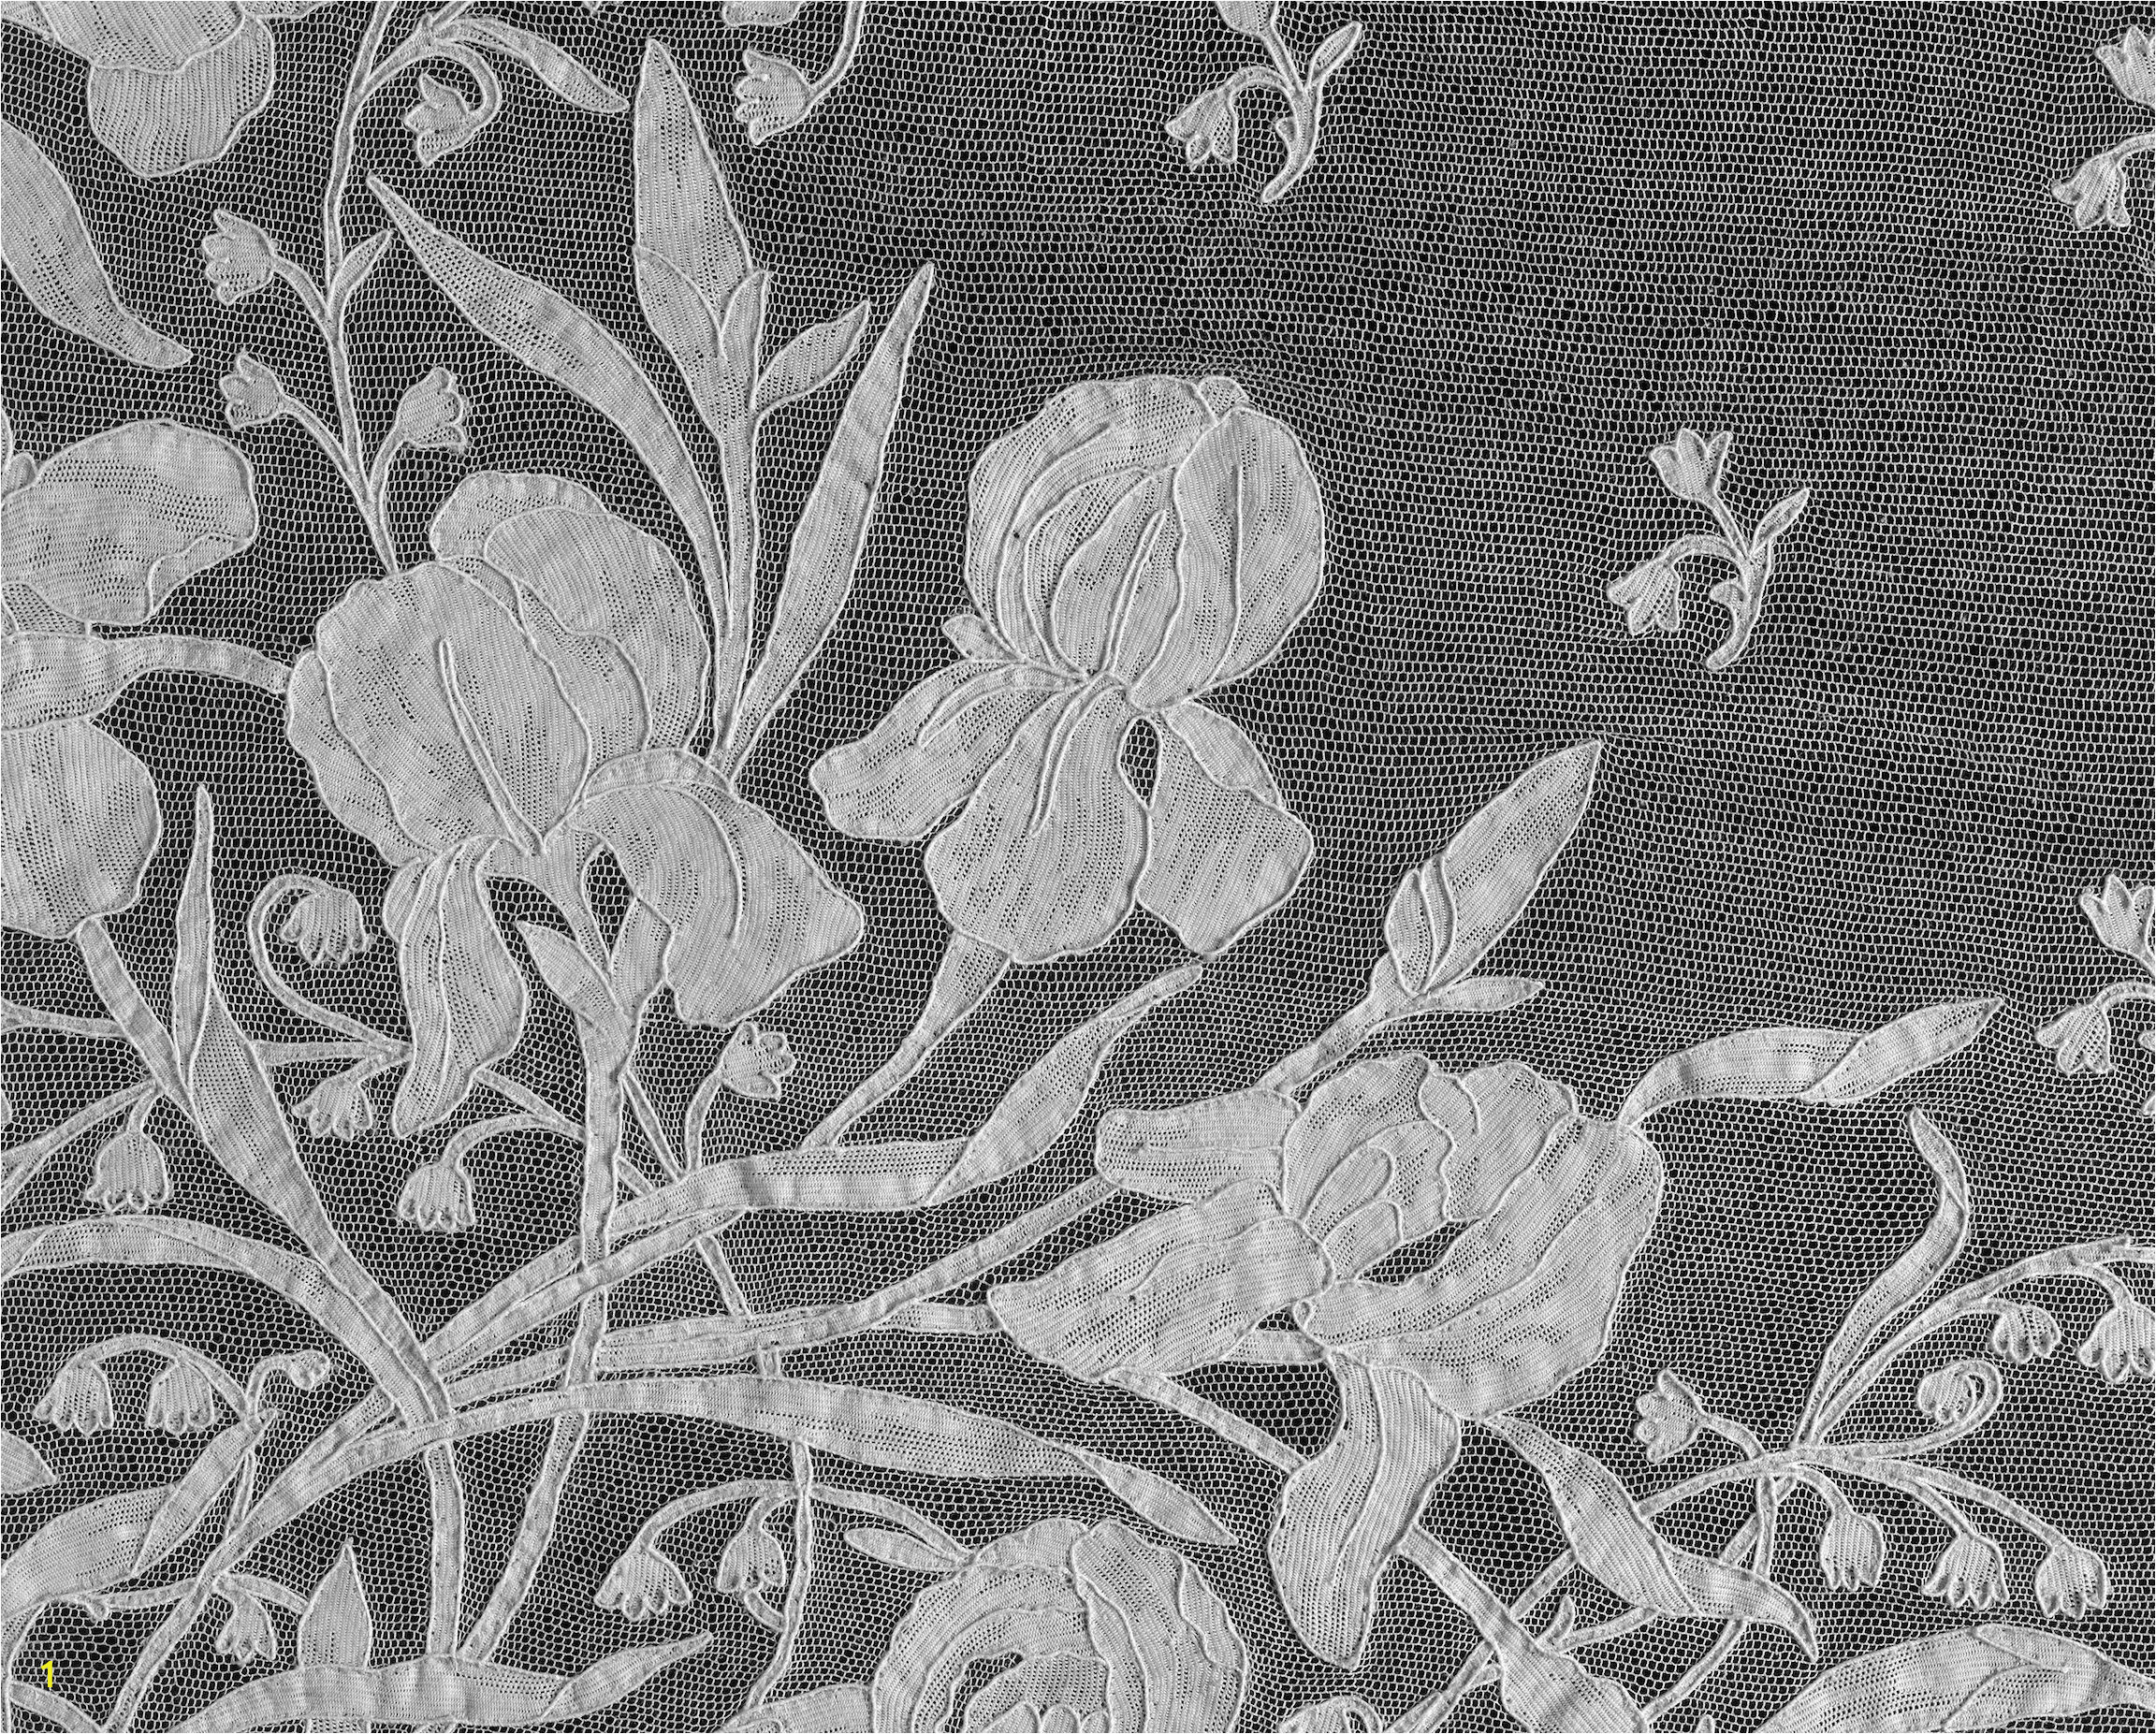 Black and White Flower Wall Mural Murals Of Italian Stole by V&a 3000mm X 2400mm